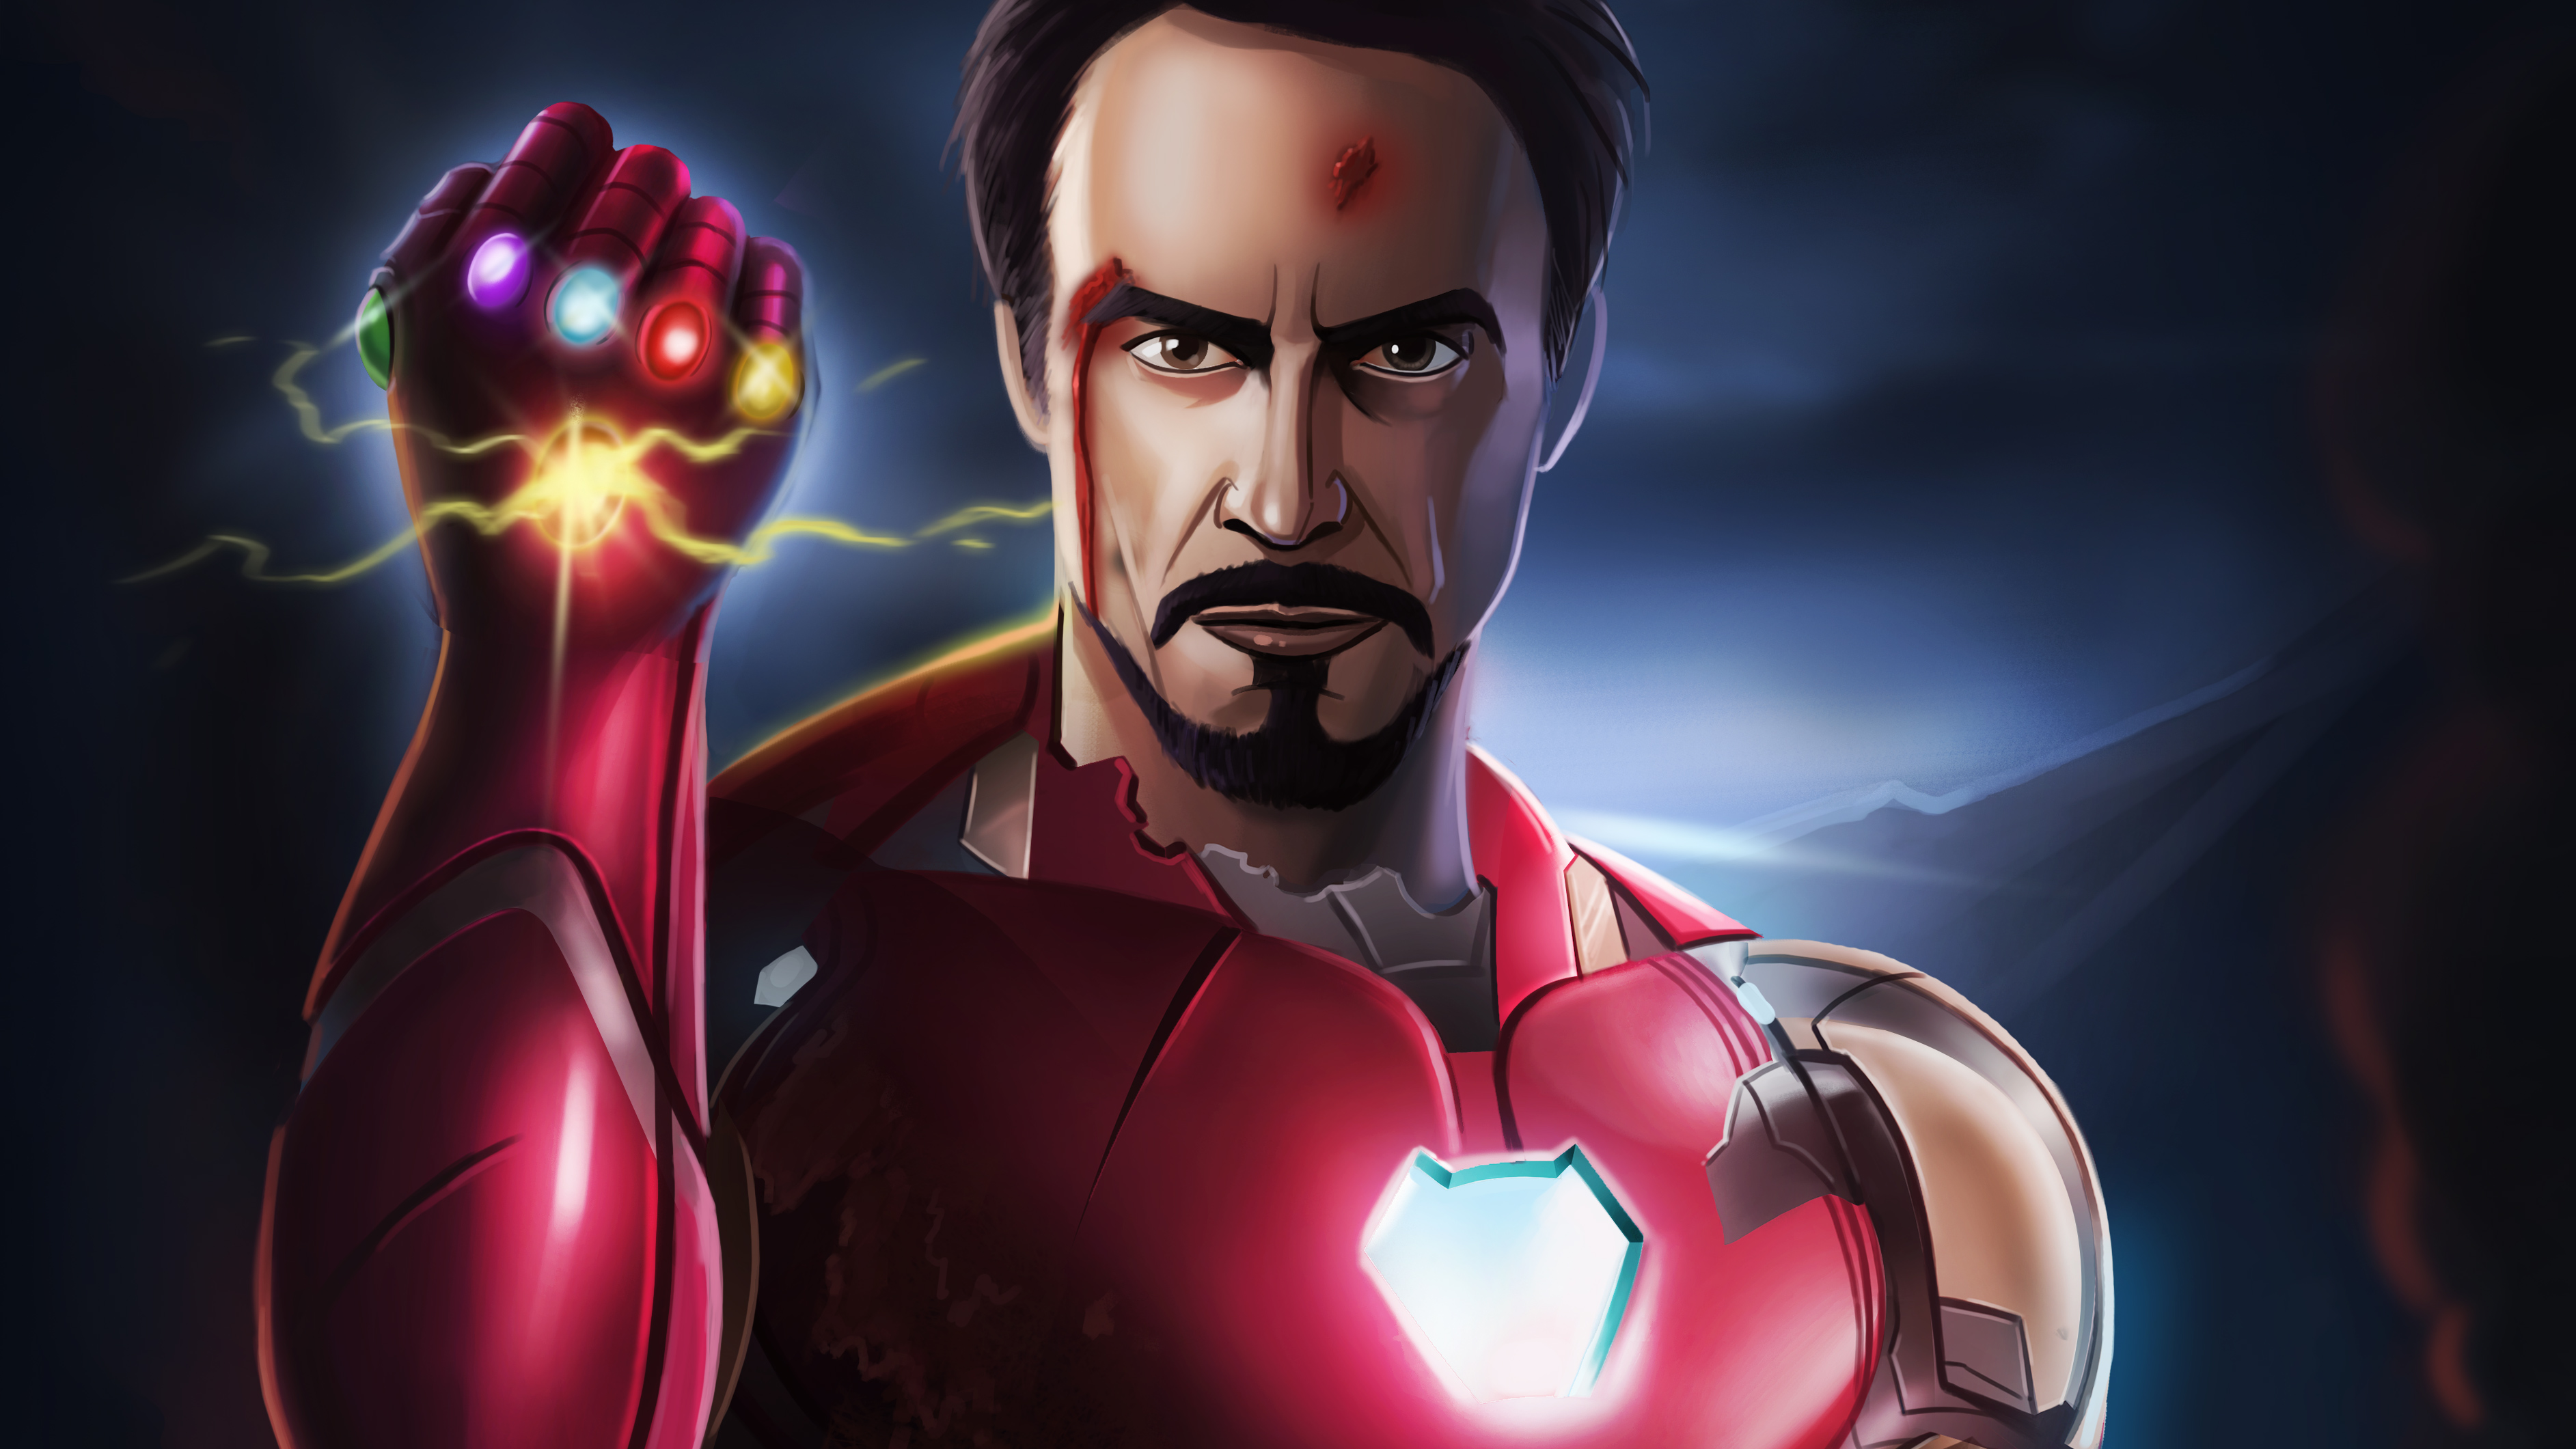 I Am Iron Man 4k Artwork Hd Superheroes 4k Wallpapers Images Backgrounds Photos And Pictures